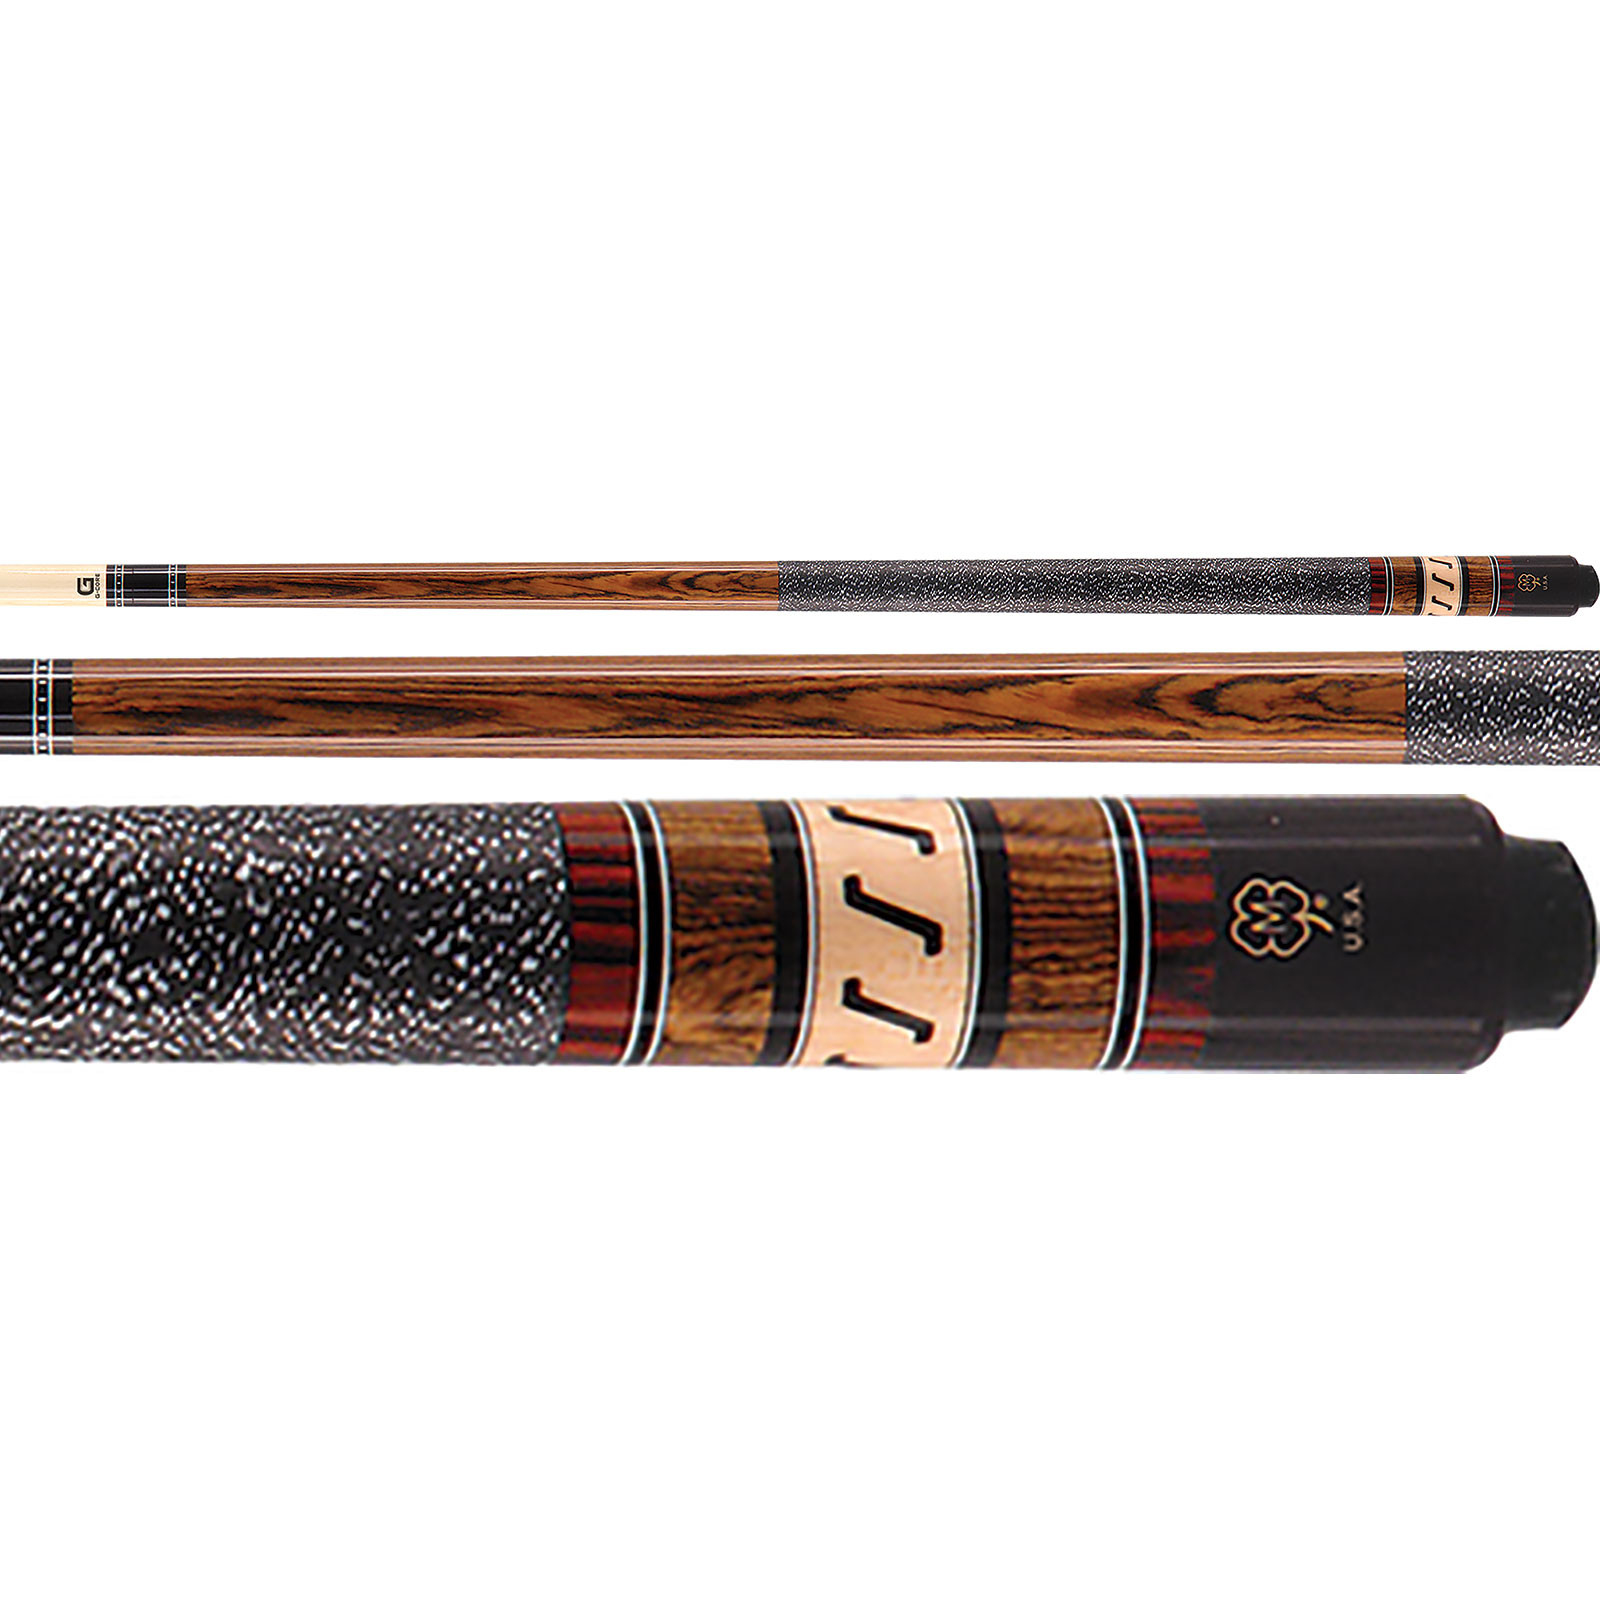 McDermott G308 G-Series Bocote Pool Cue